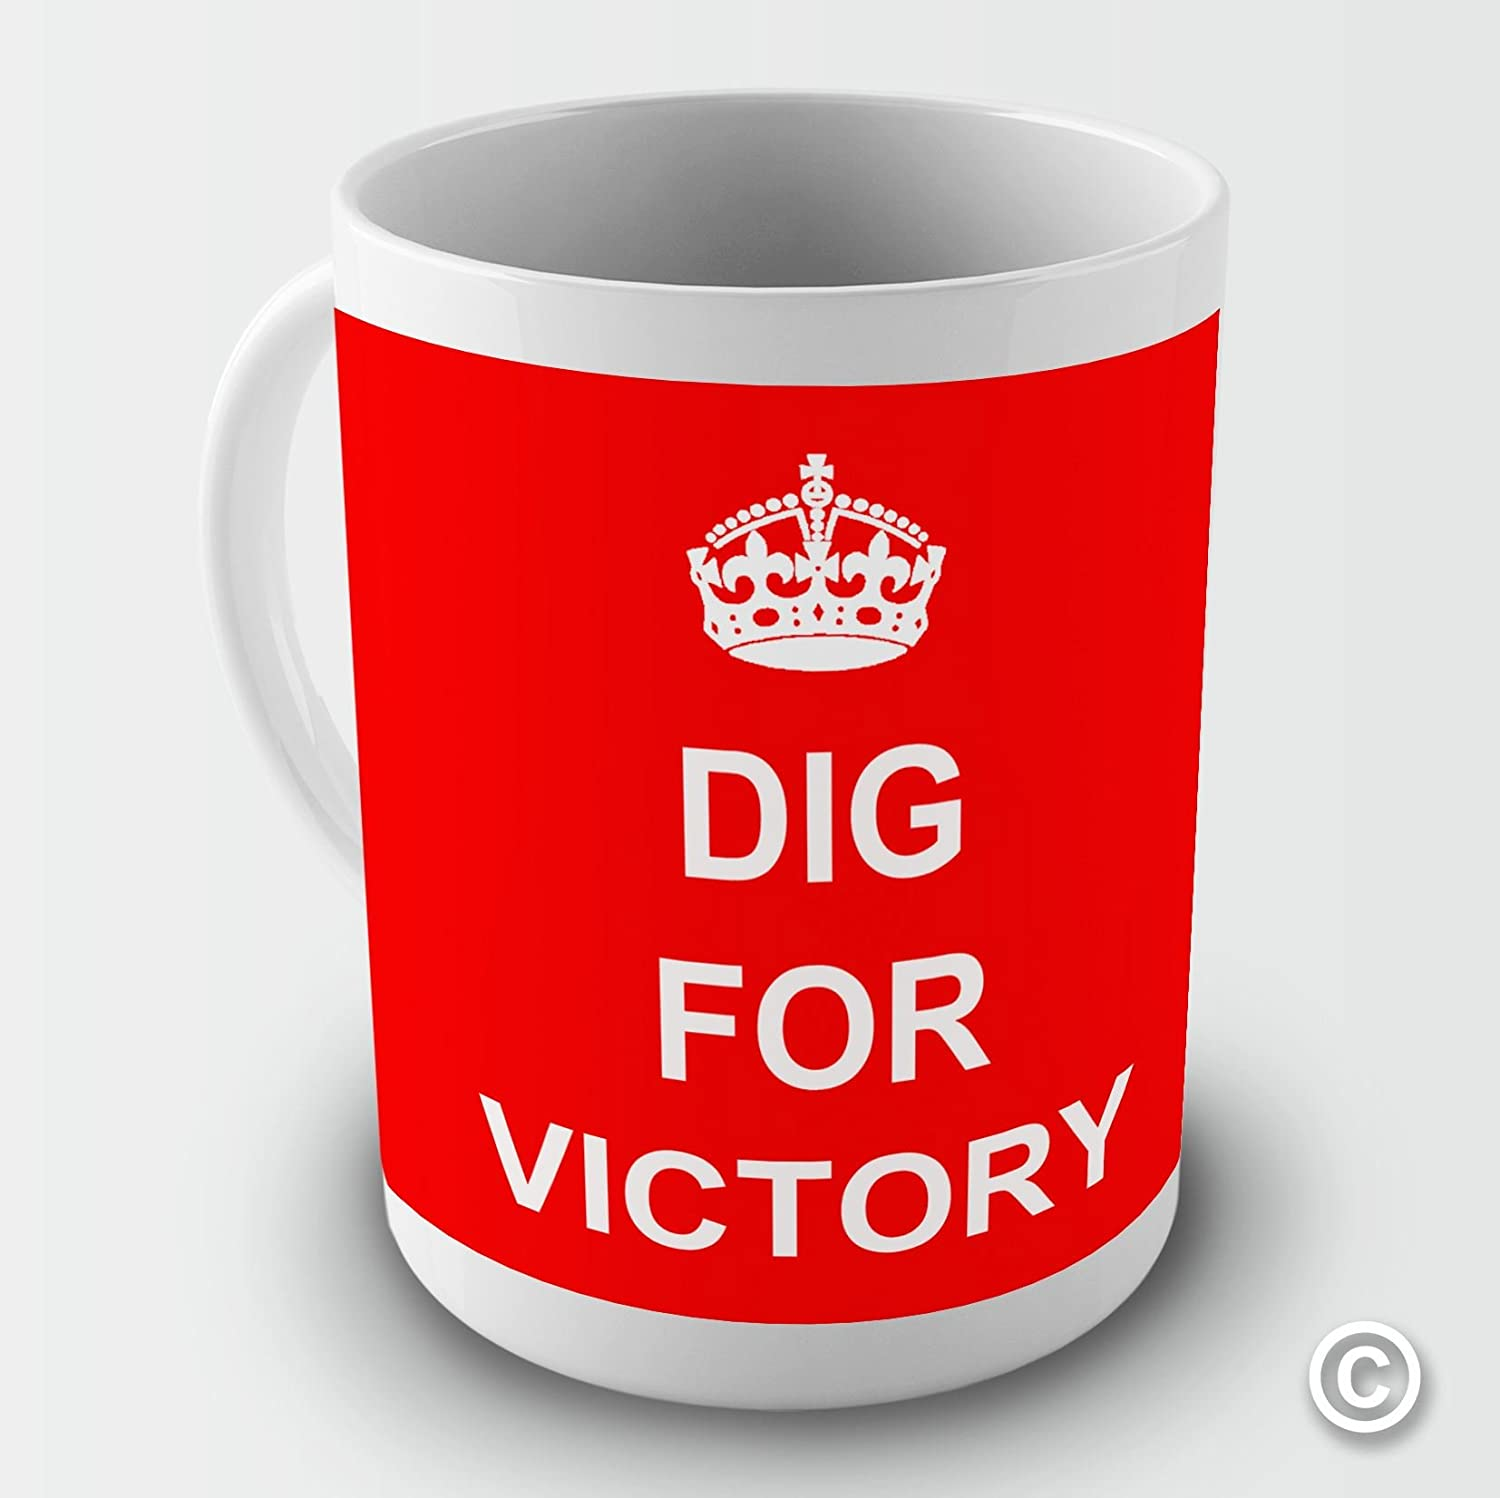 DIG FOR VICTORY KEEP CALM AND CARRY ON Novelty Mug Tea Coffee Gift Cup Retro TWISTED ENVY